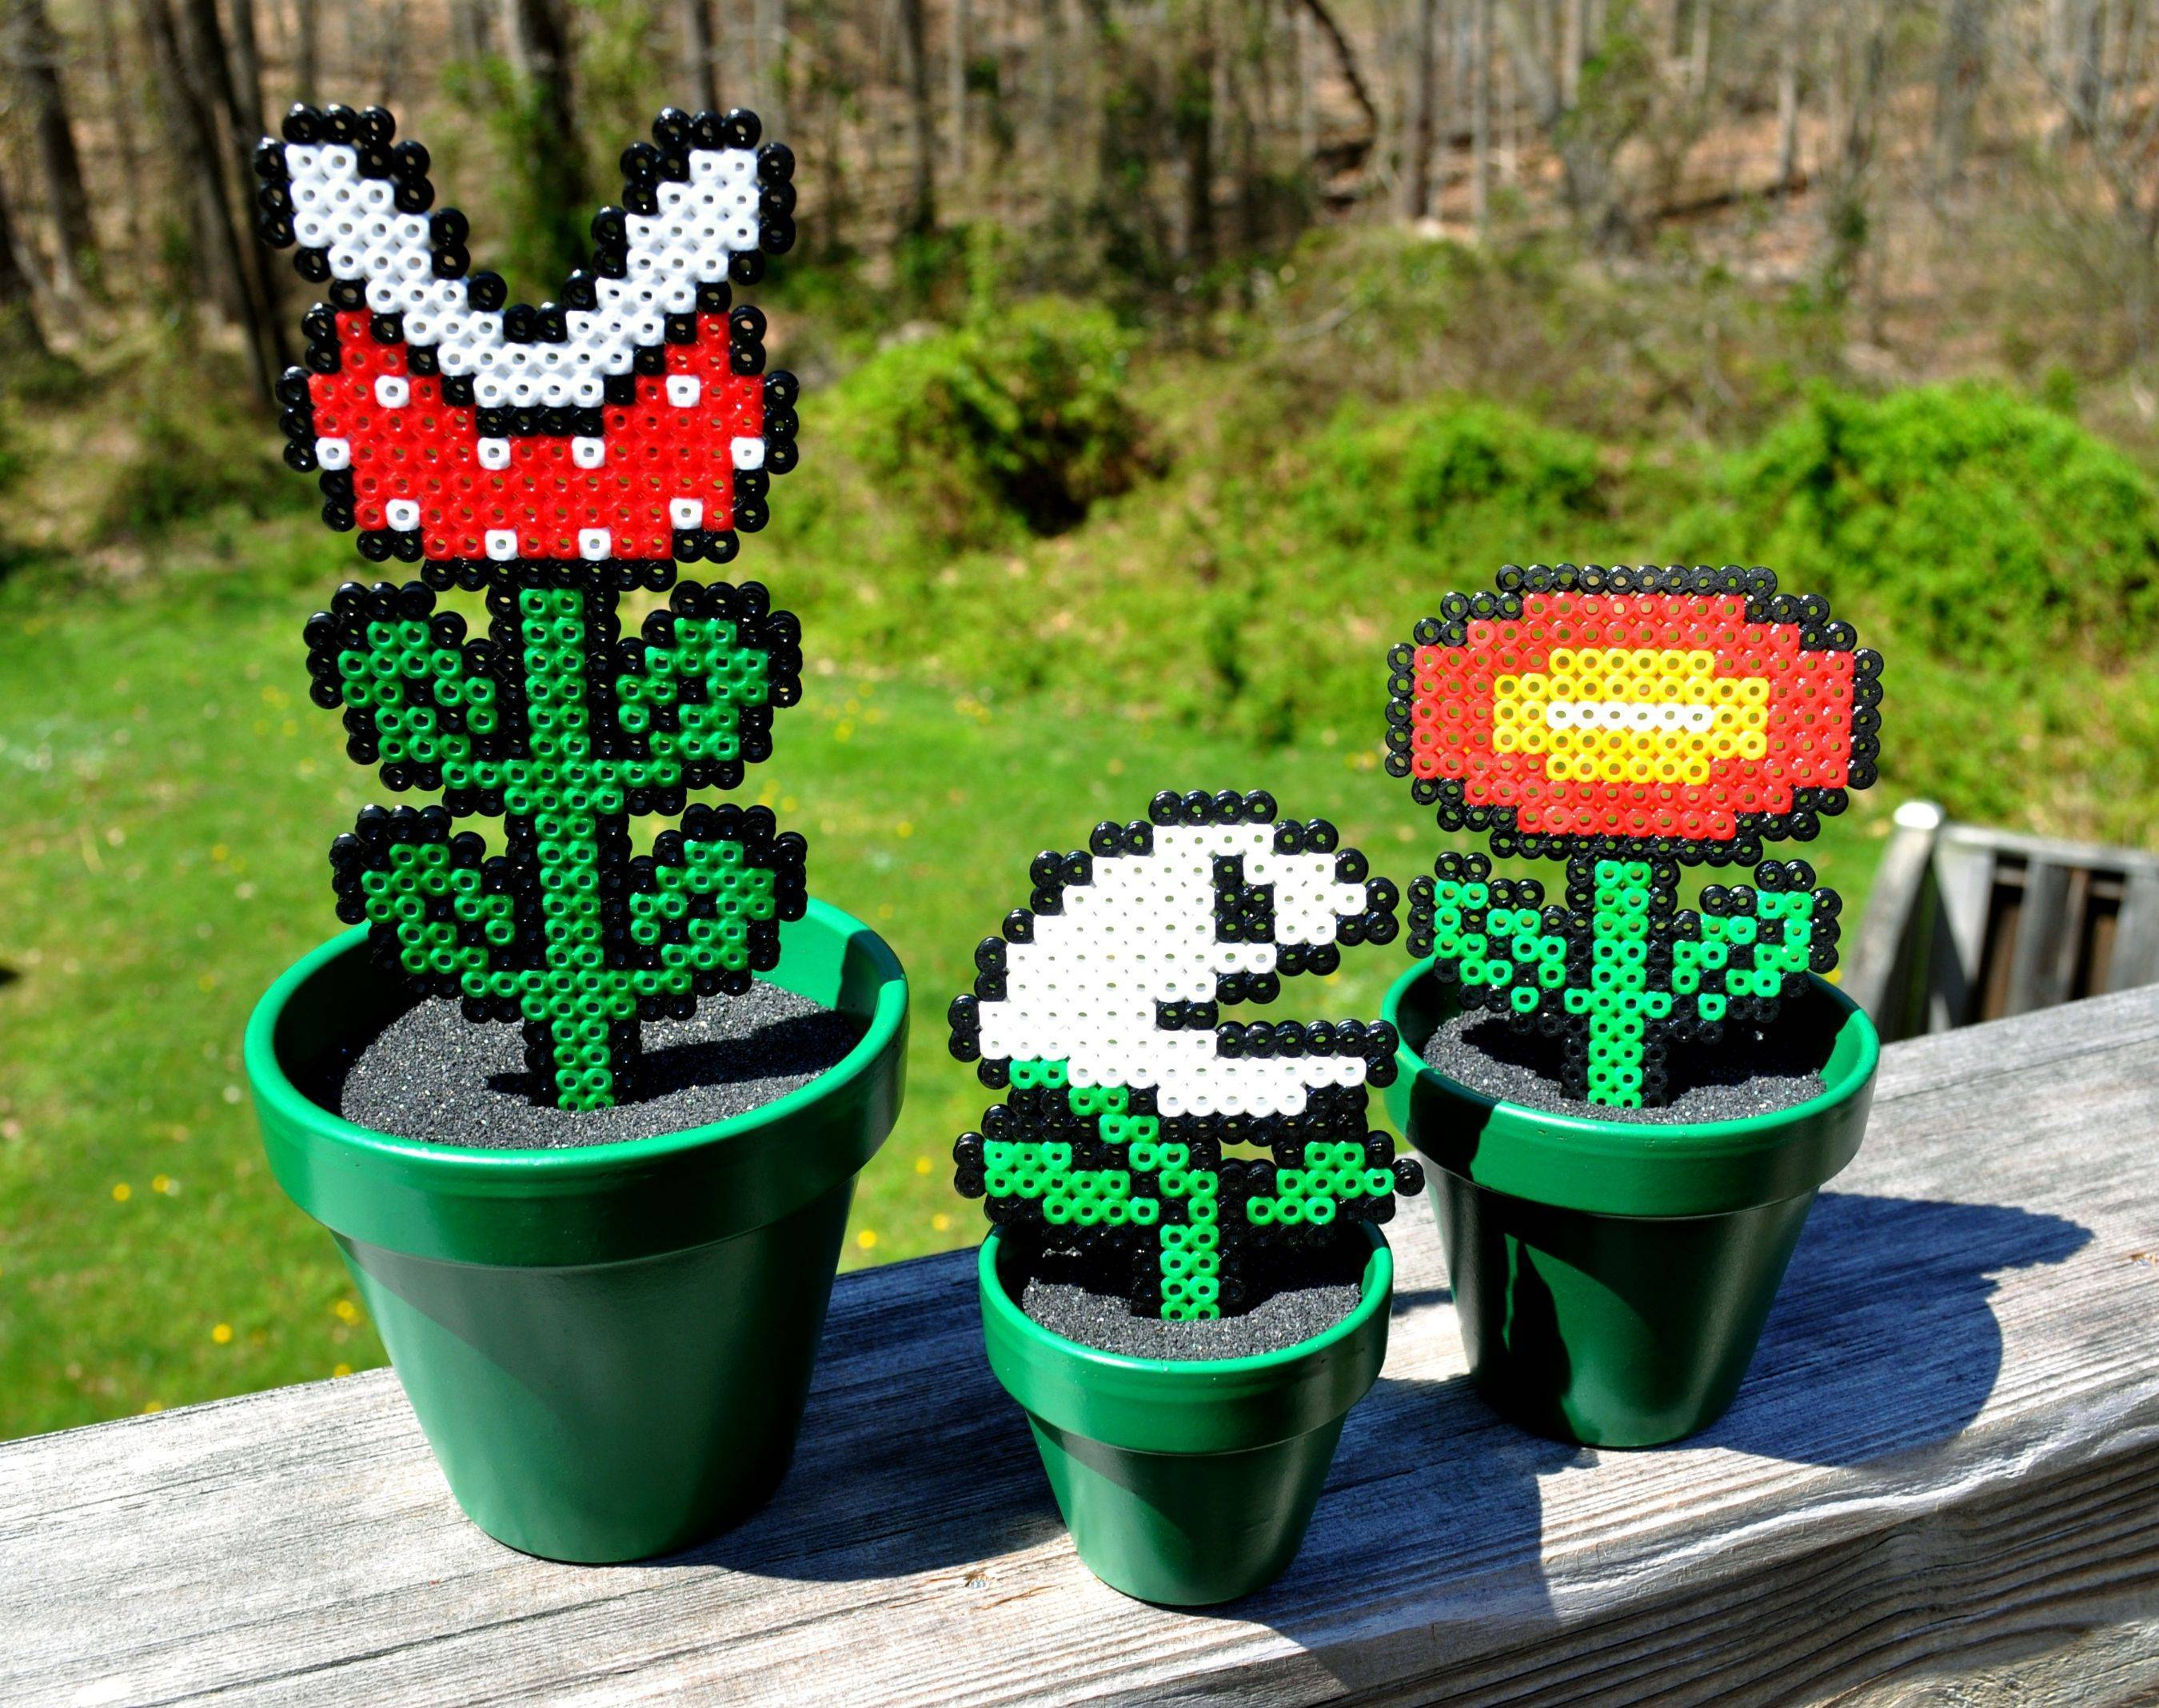 Just some Mario pots